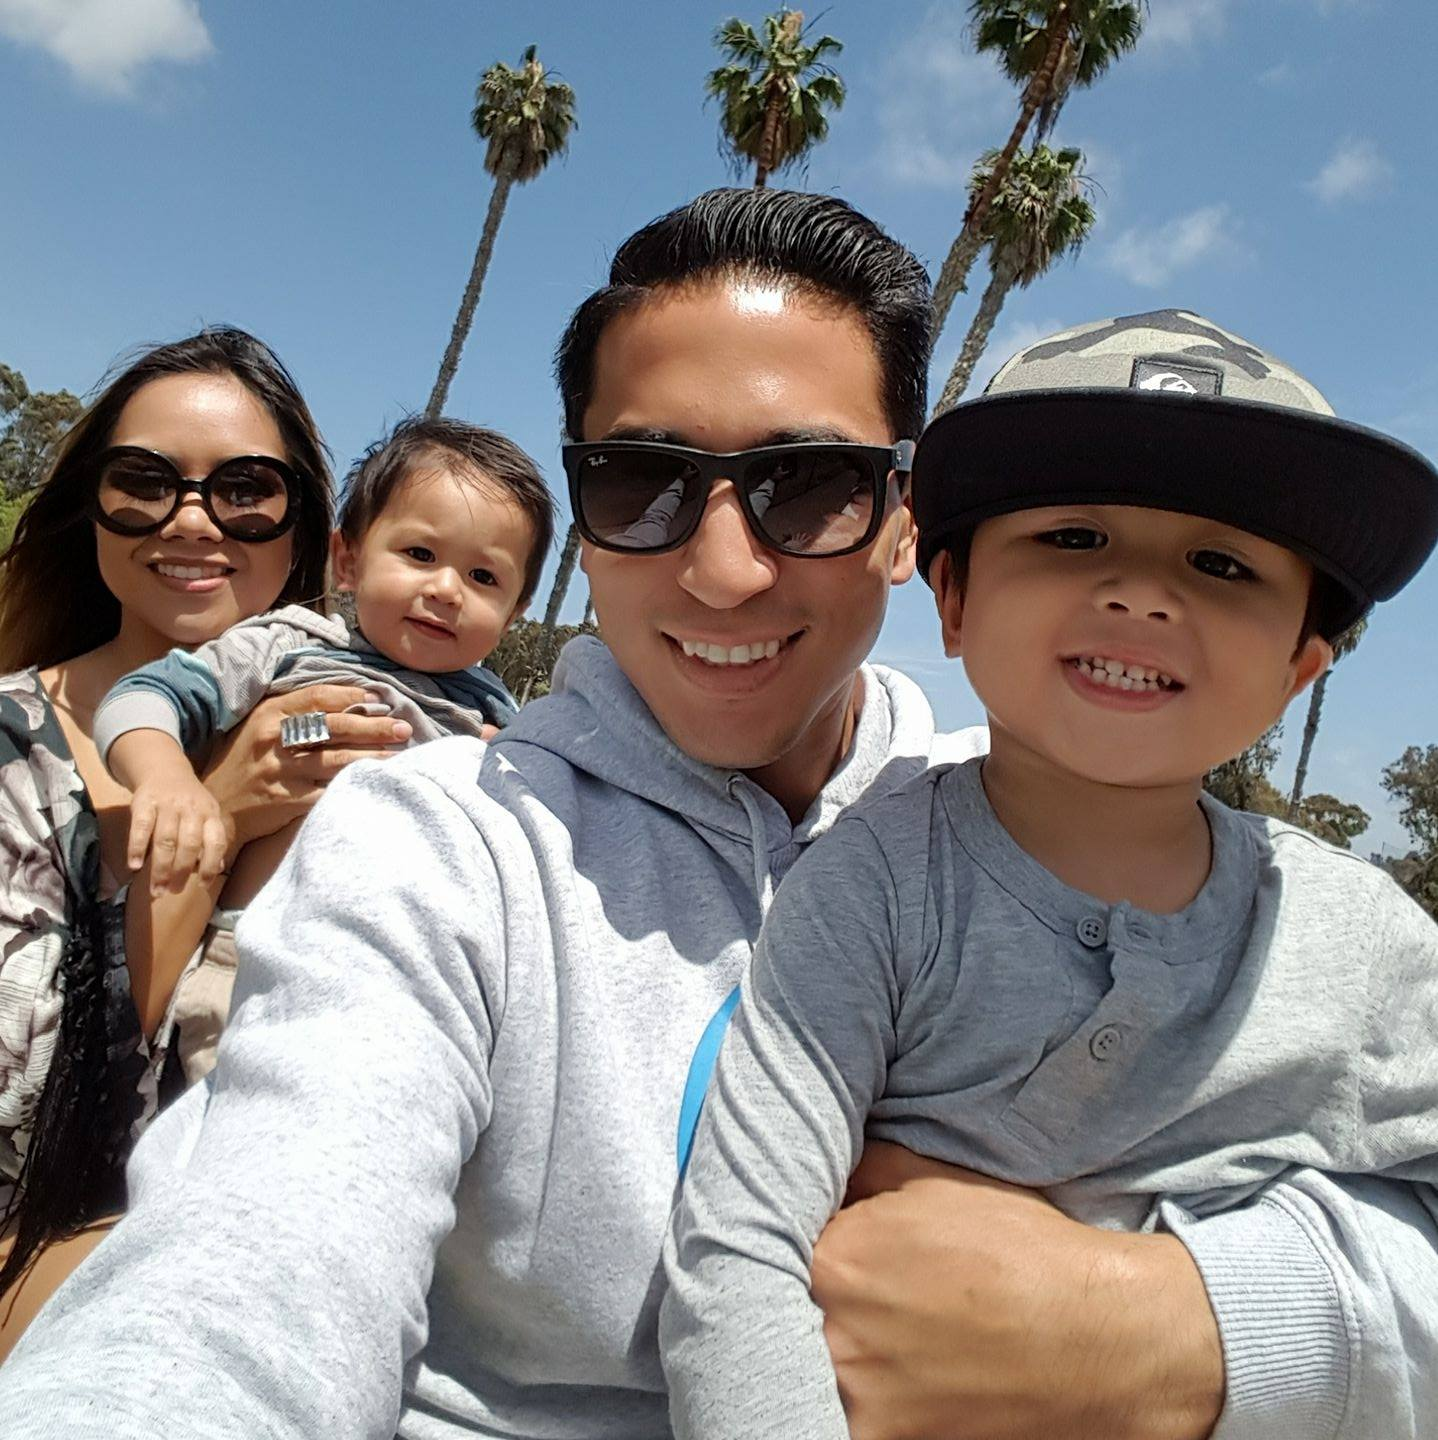 I can't believe how much we saved! - Richie and Jasmine LuchtSan Diego, CALearn more ➝